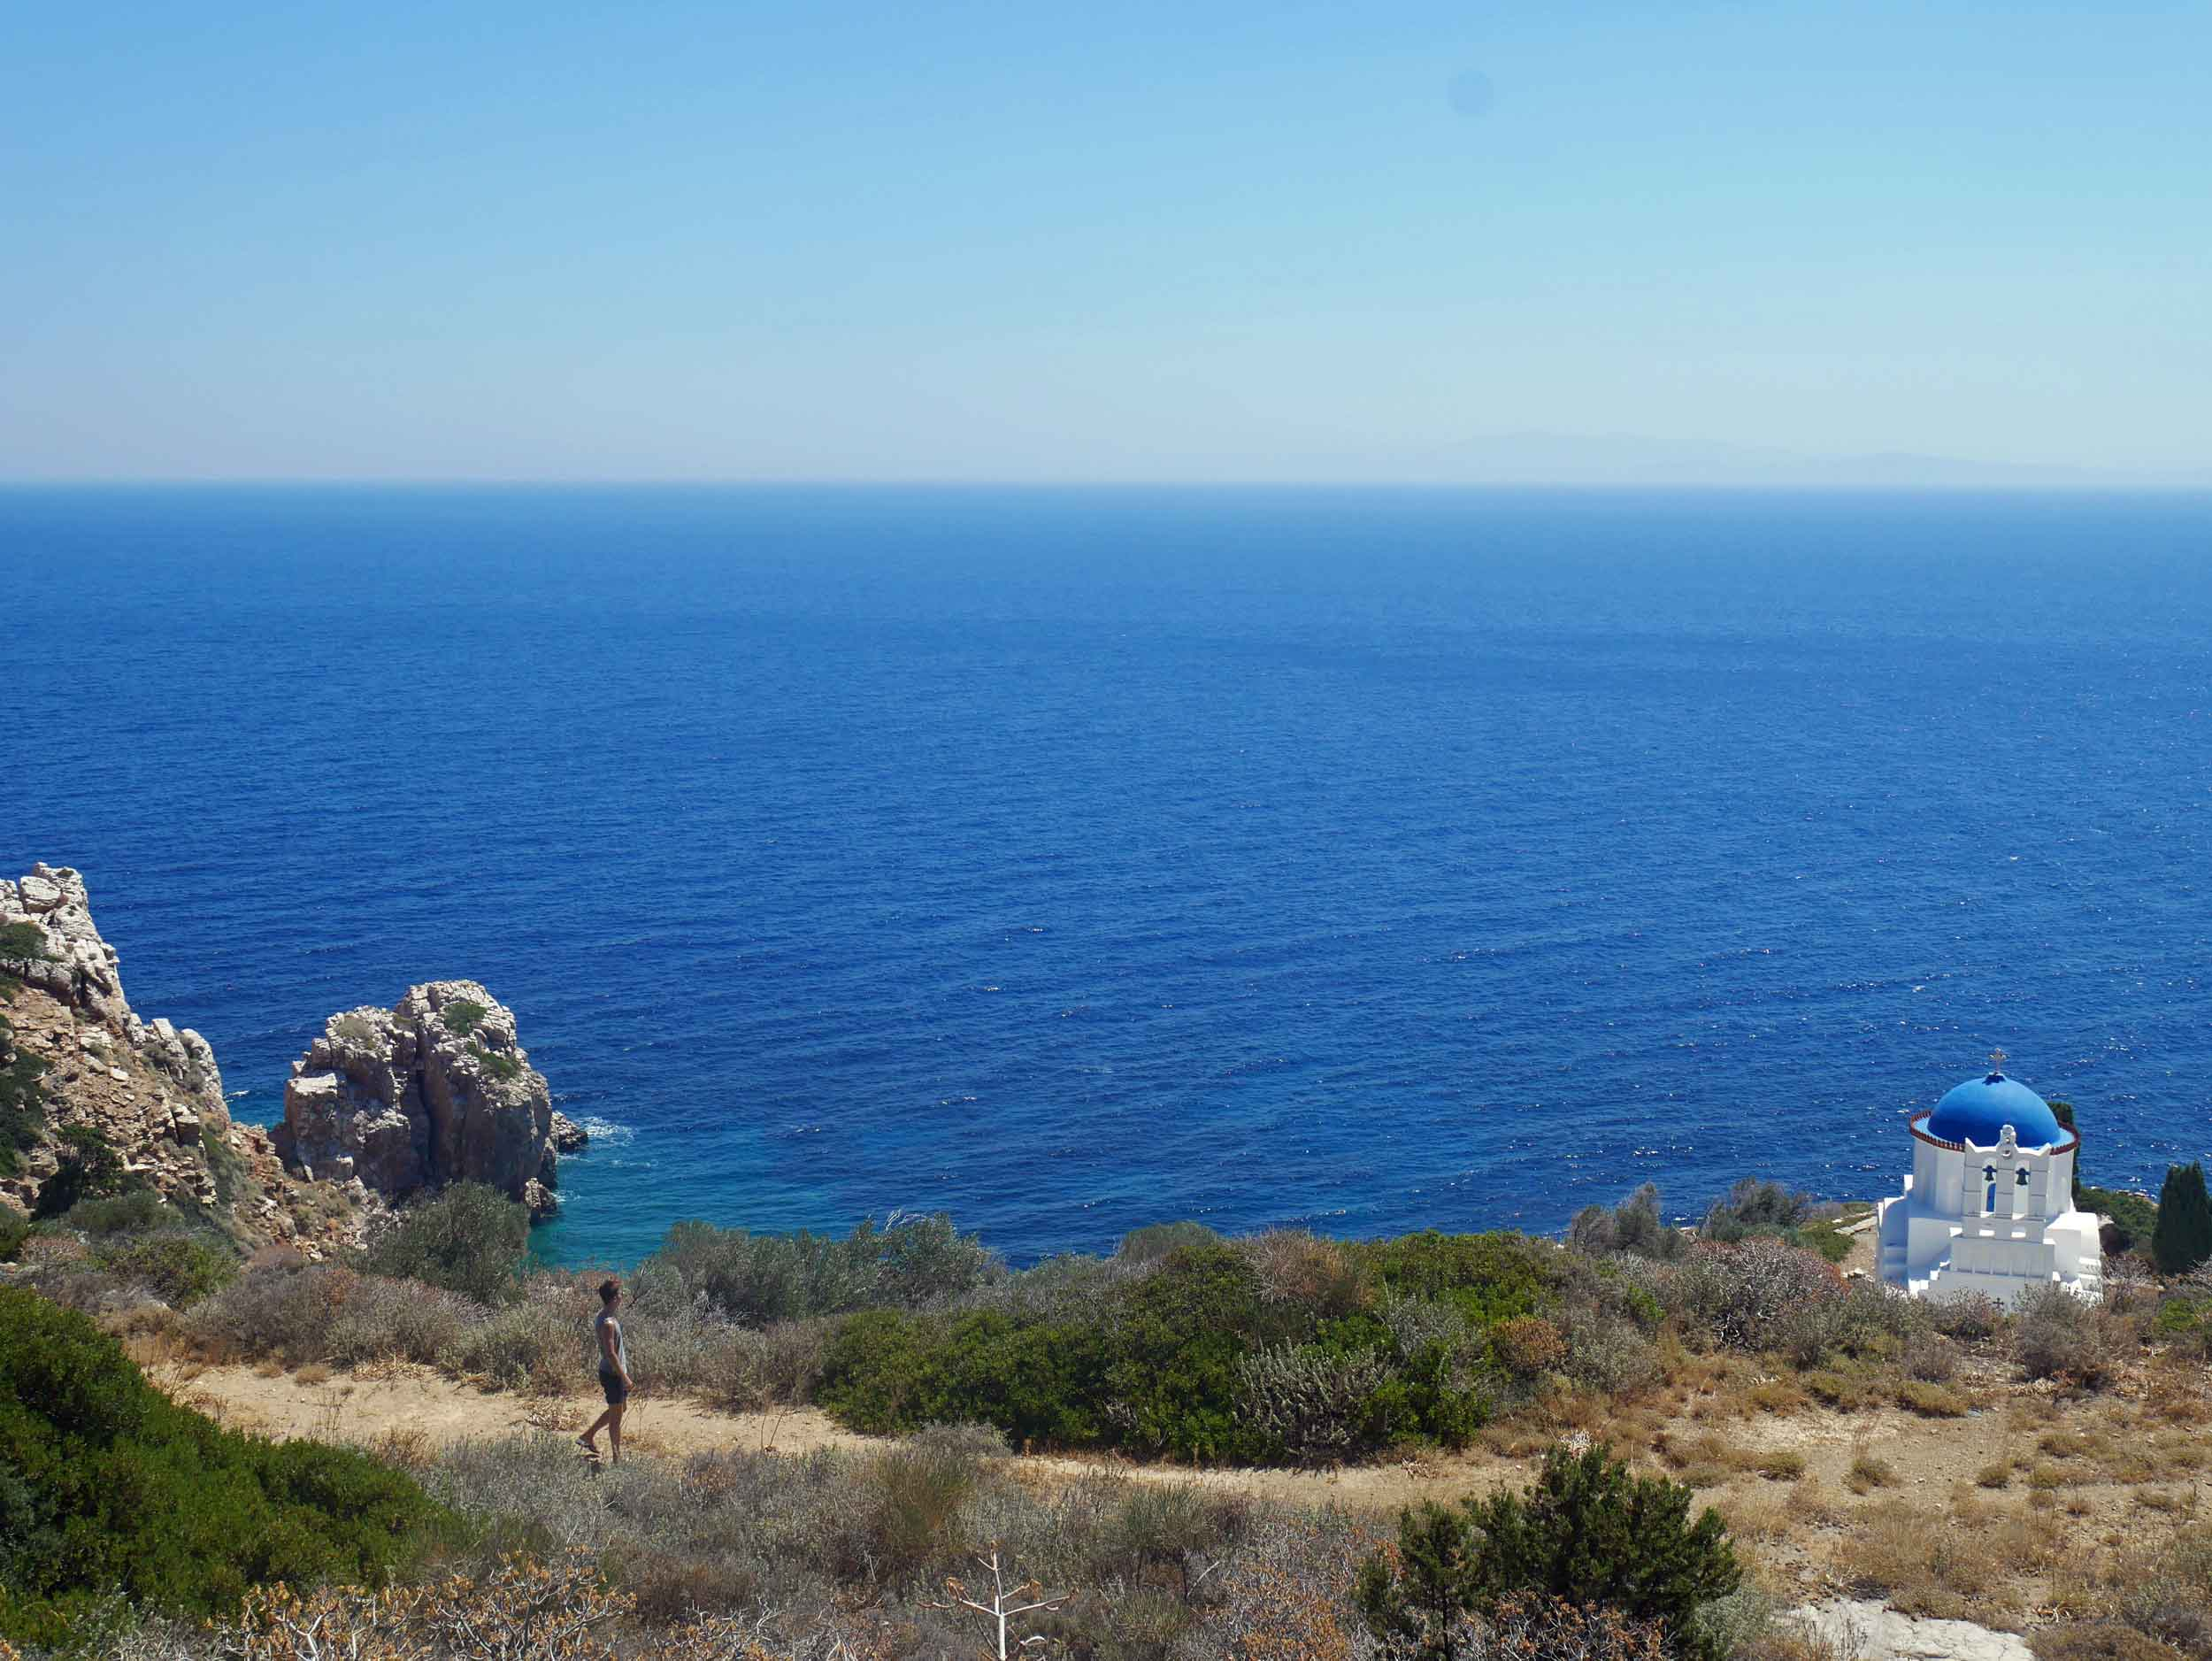 Walking to Panagia Poulati, we couldn't help but marvel at the church's blue and white.